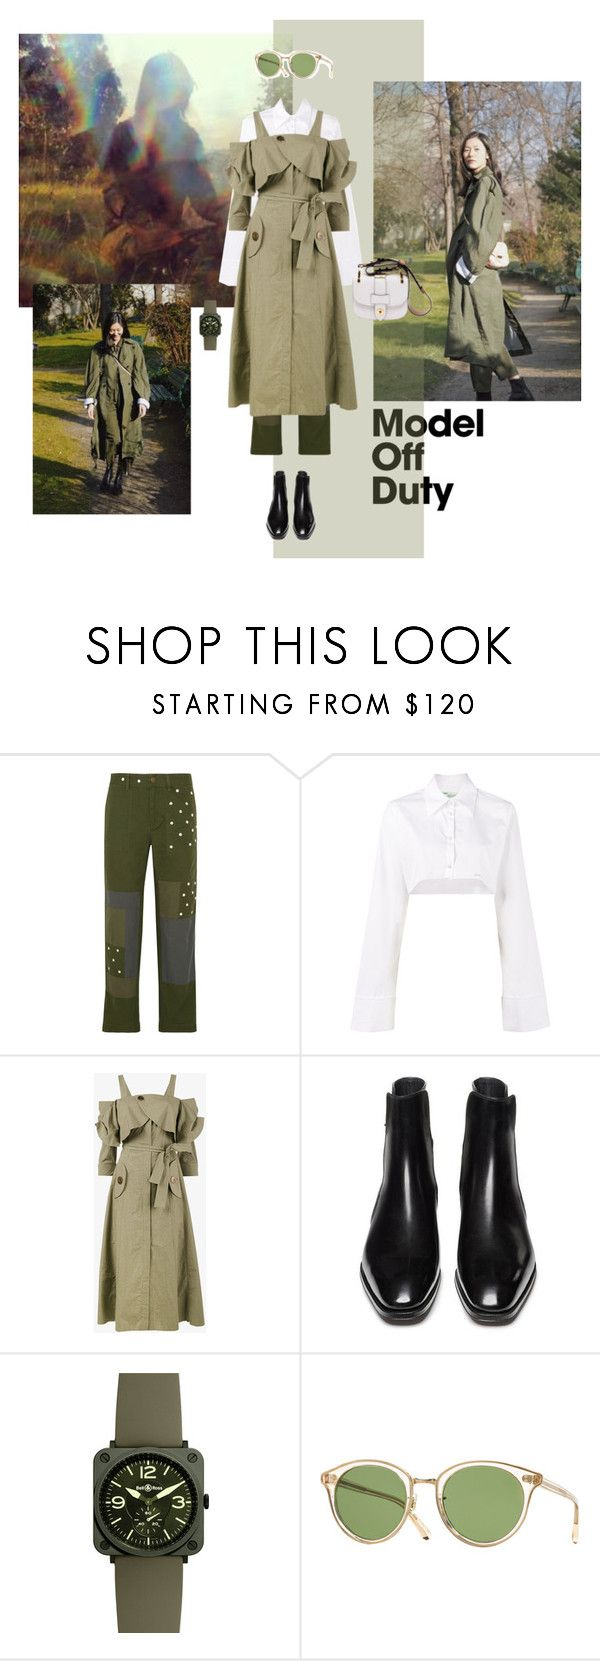 """""""into the wild"""" by ladyarchitect ❤ liked on Polyvore featuring J.Crew, Off-White, Kitx, Bell & Ross, Oliver Peoples, army, ladyarchitect and modleoffduty"""